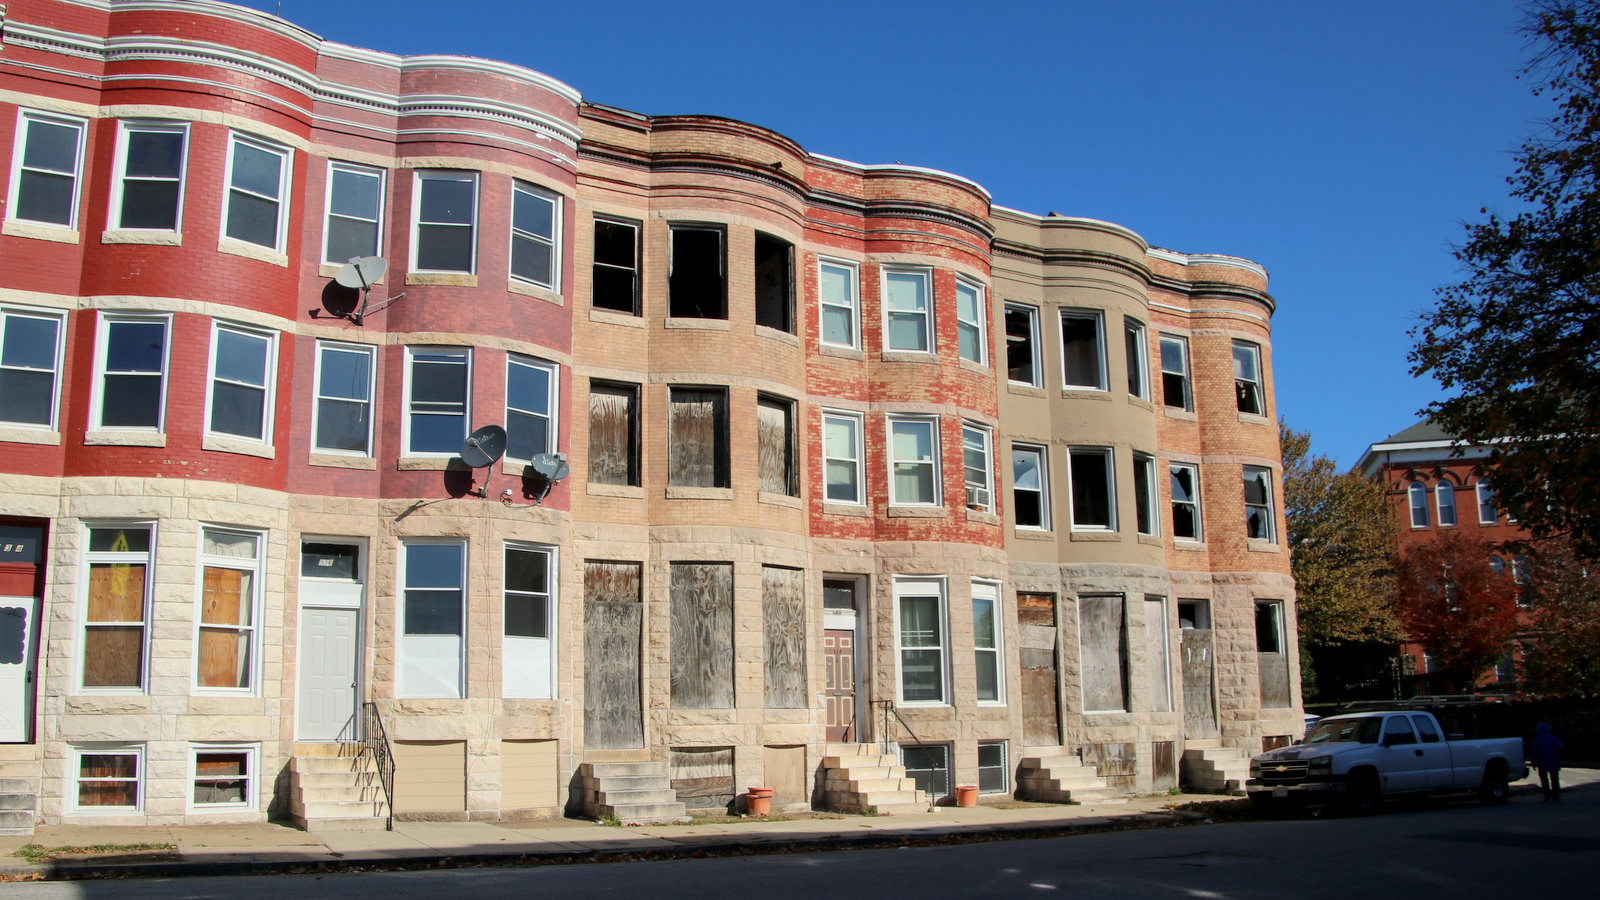 Like many places in Baltimore, abandoned rowhouses along East 22nd Street plague parts of the district. (Fern Shen)